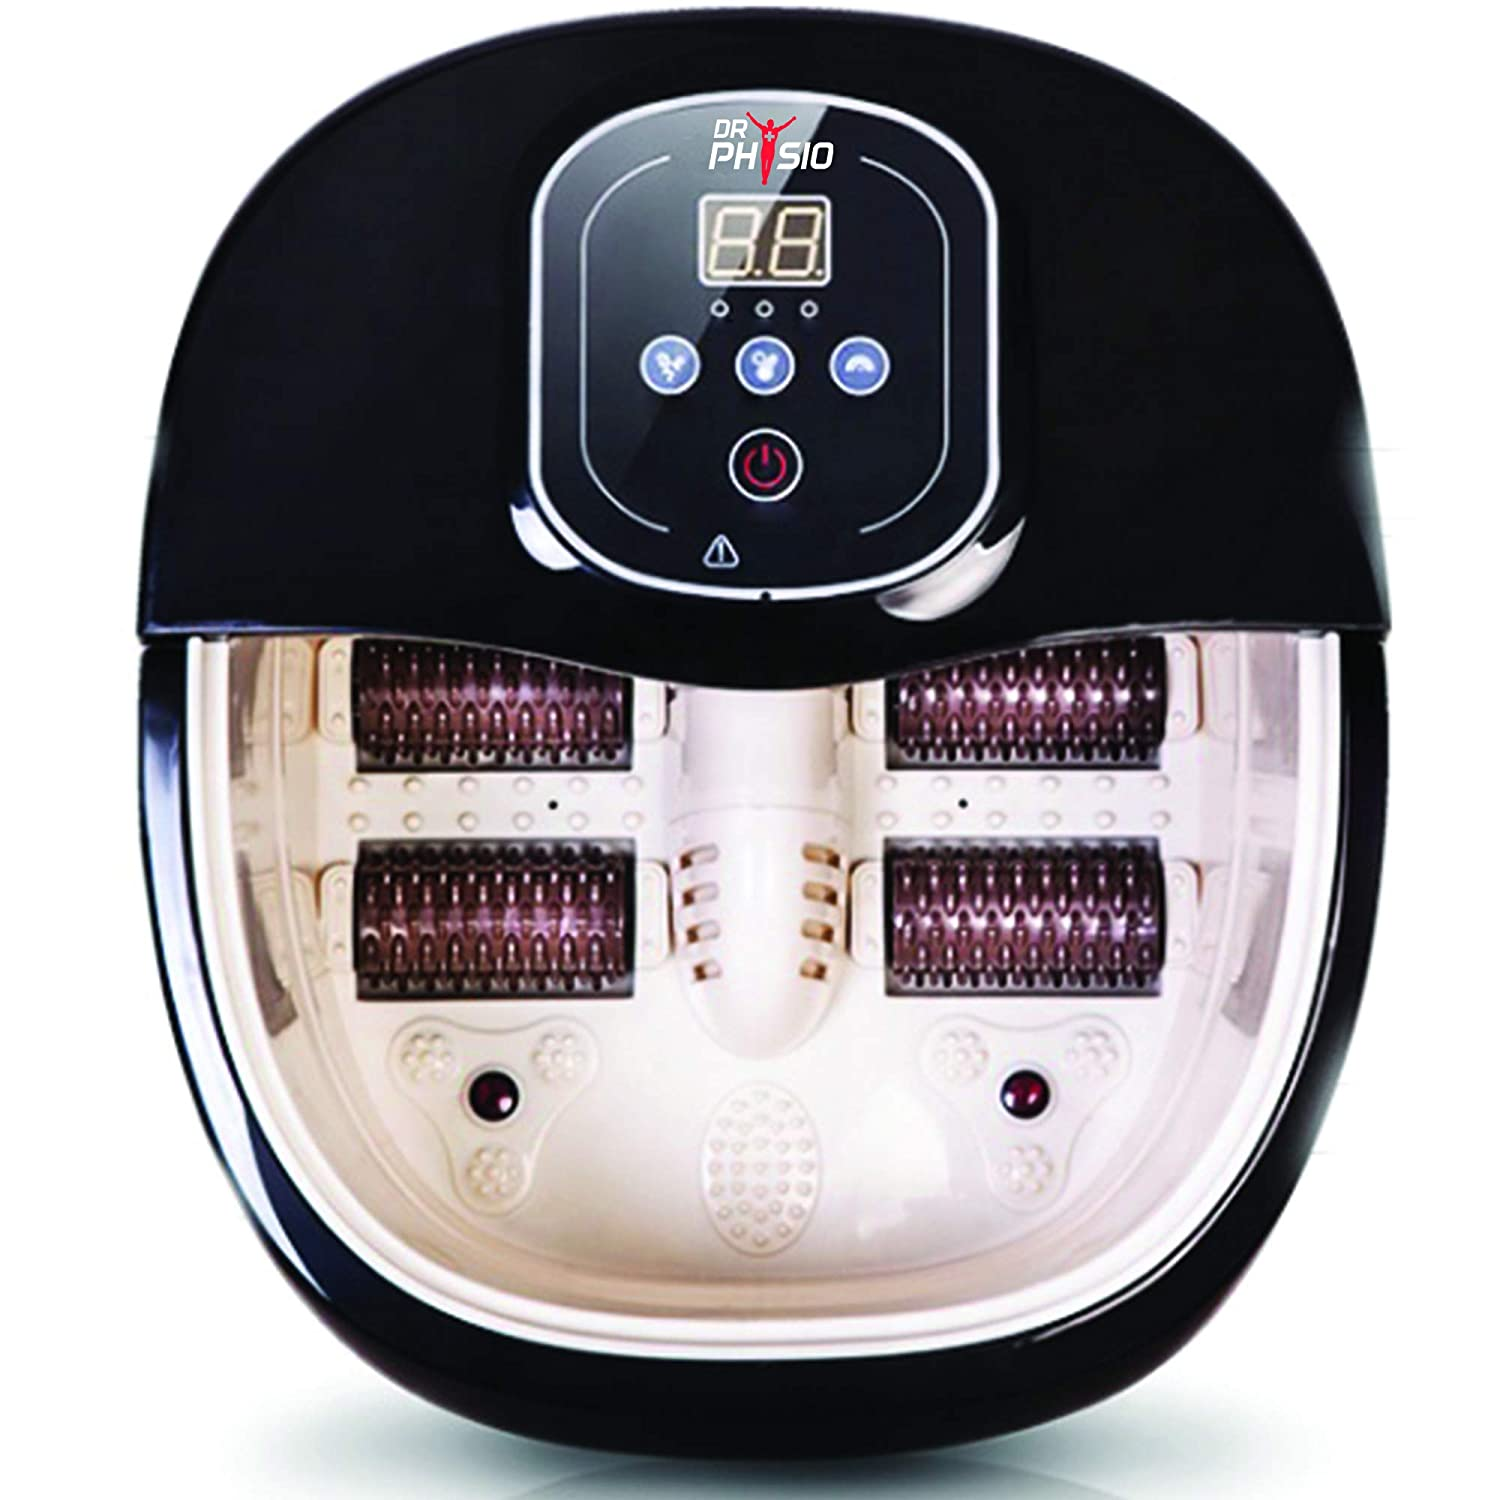 Dr-Physio-Electric-Foot-Spa-Pedicure-Massager